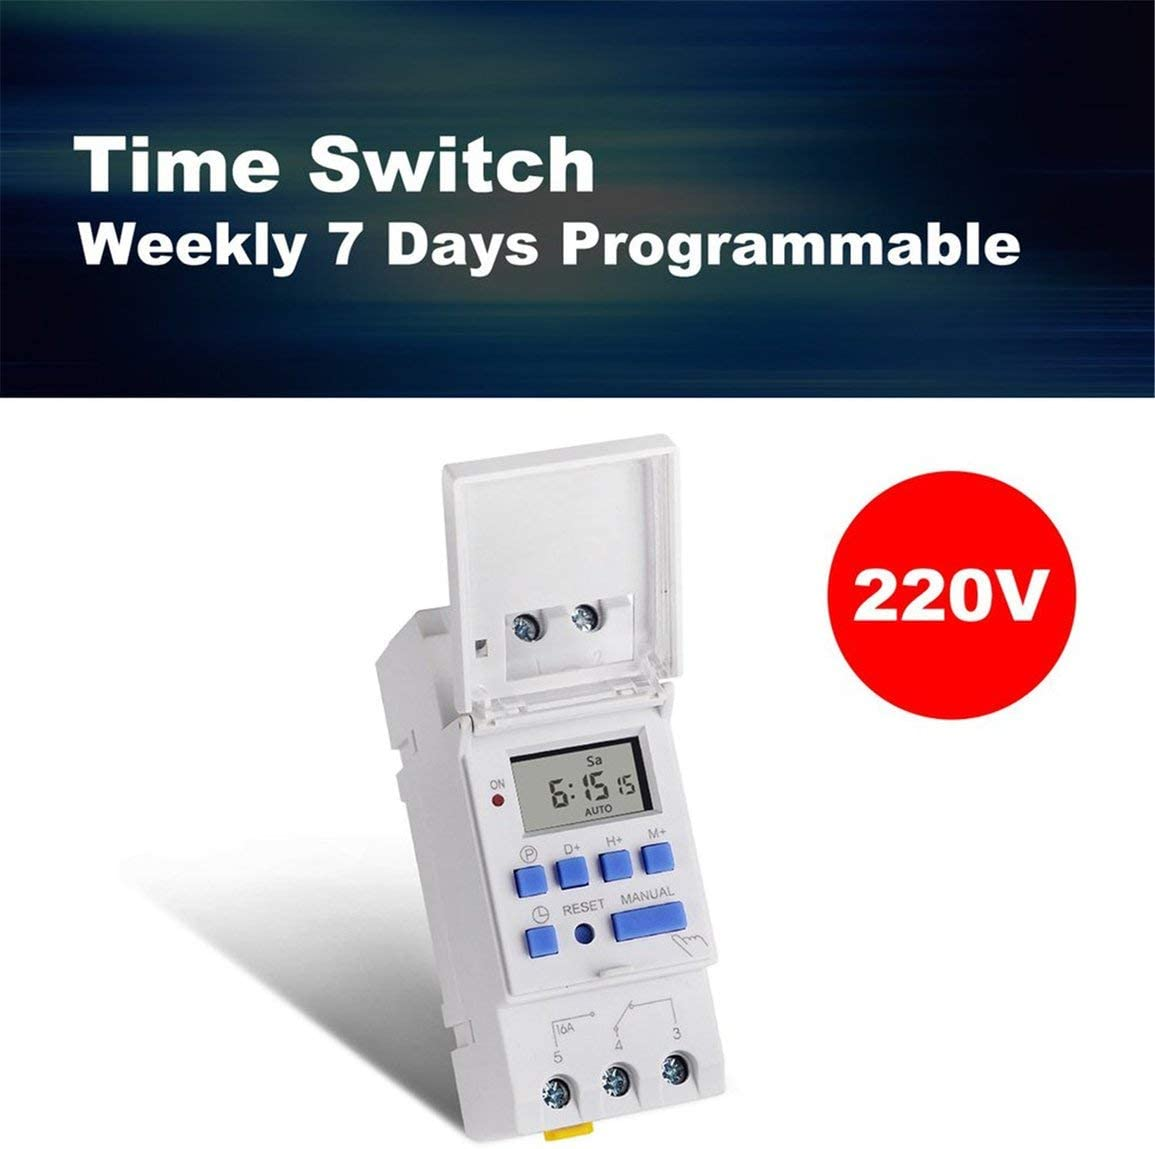 SINOTIMER AC 220V Weekly 7 Days Digital Programmable Time Switch Relay Timer Control Din Rail Mount for Electric Appliance fghfhfgjdfj